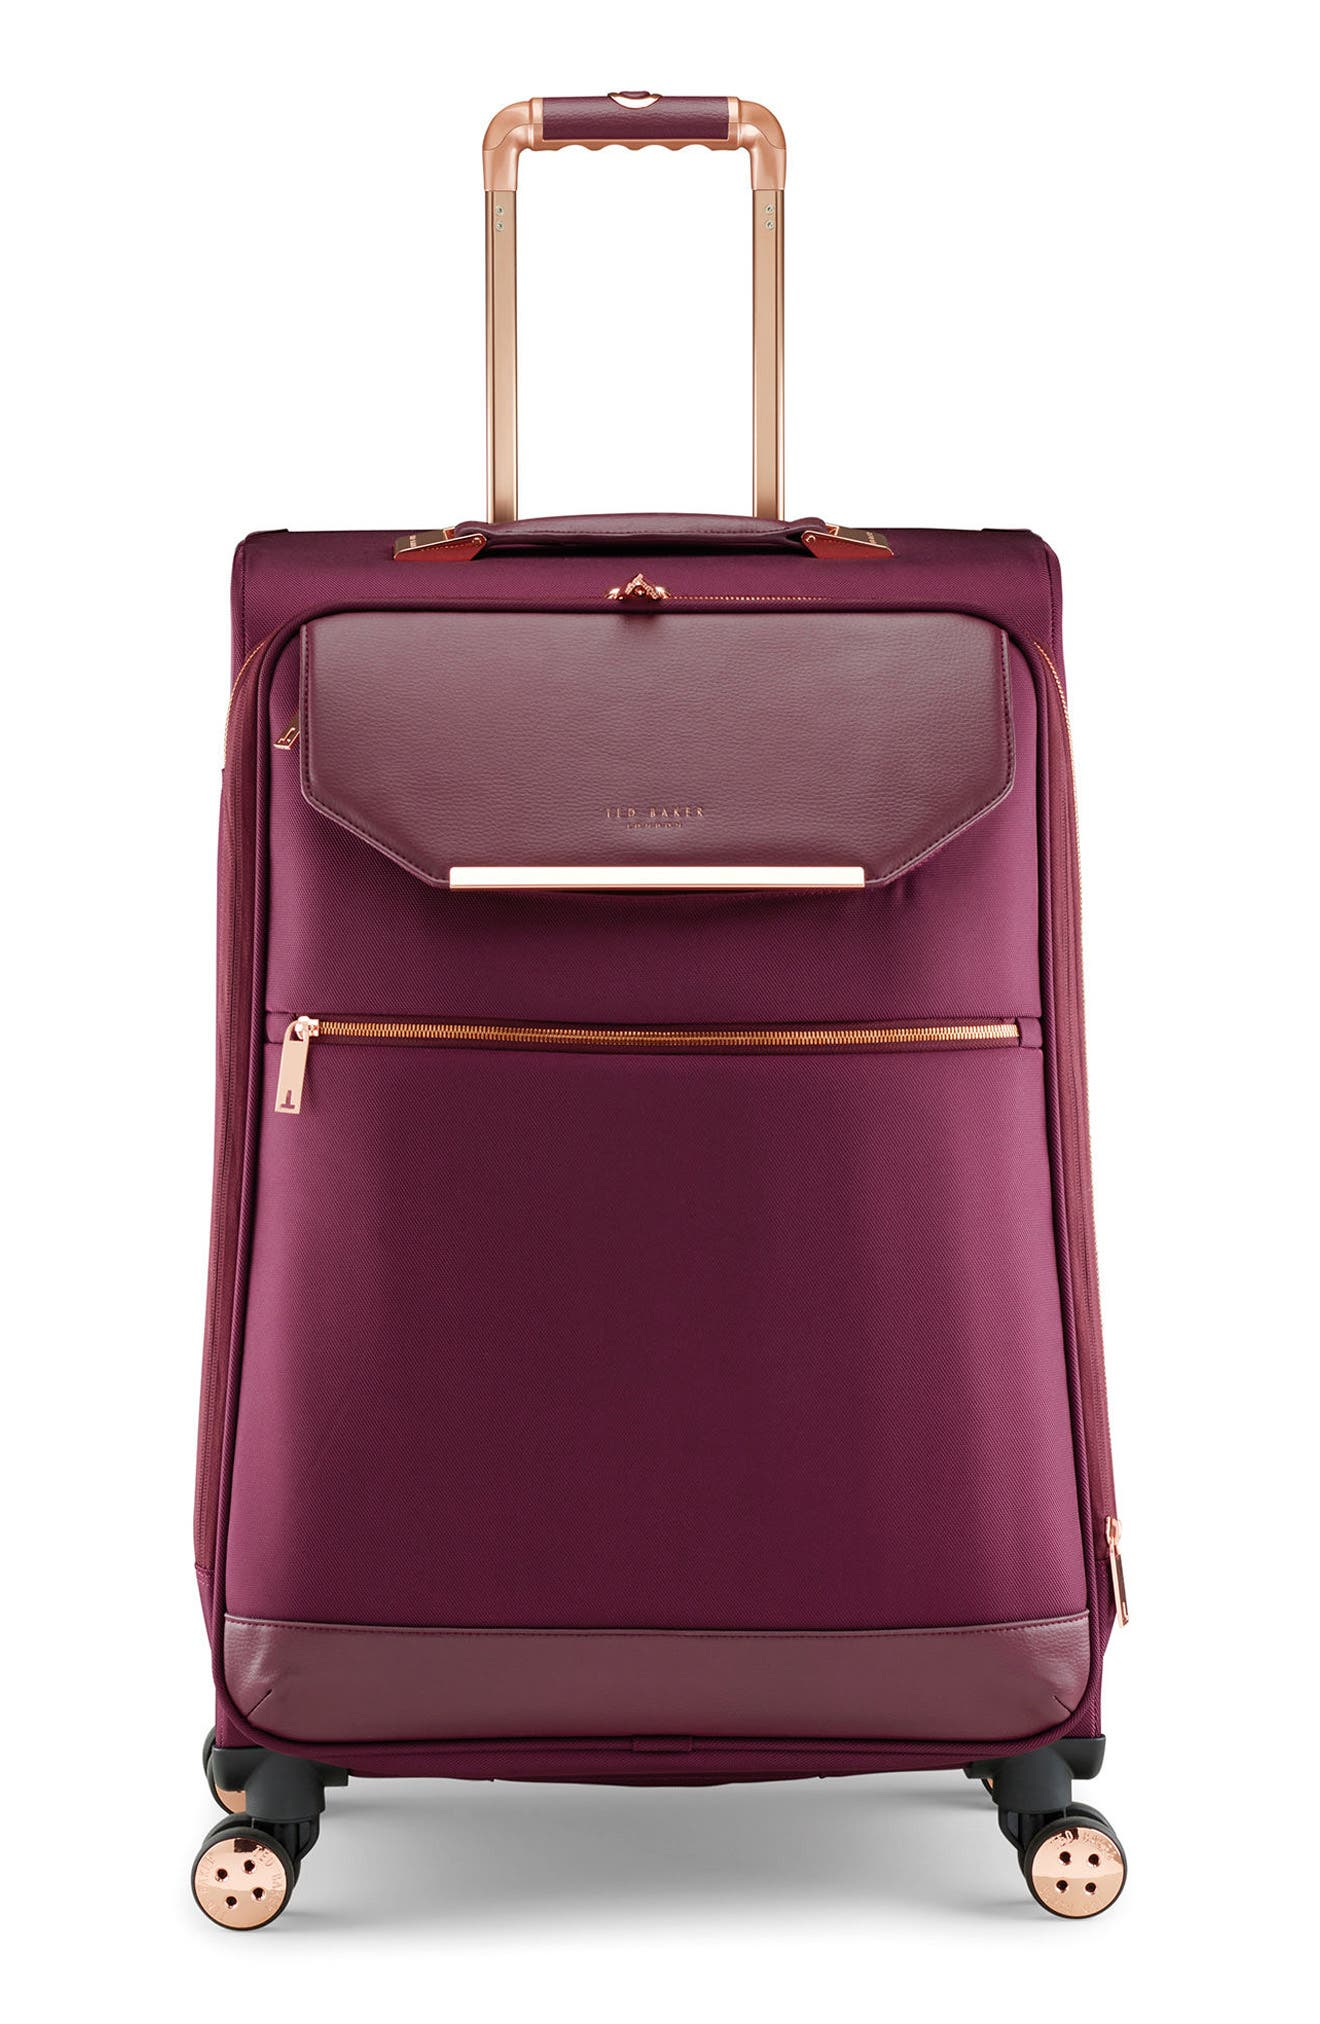 Ted Baker London 28-Inch Spinner Trolley Packing Case